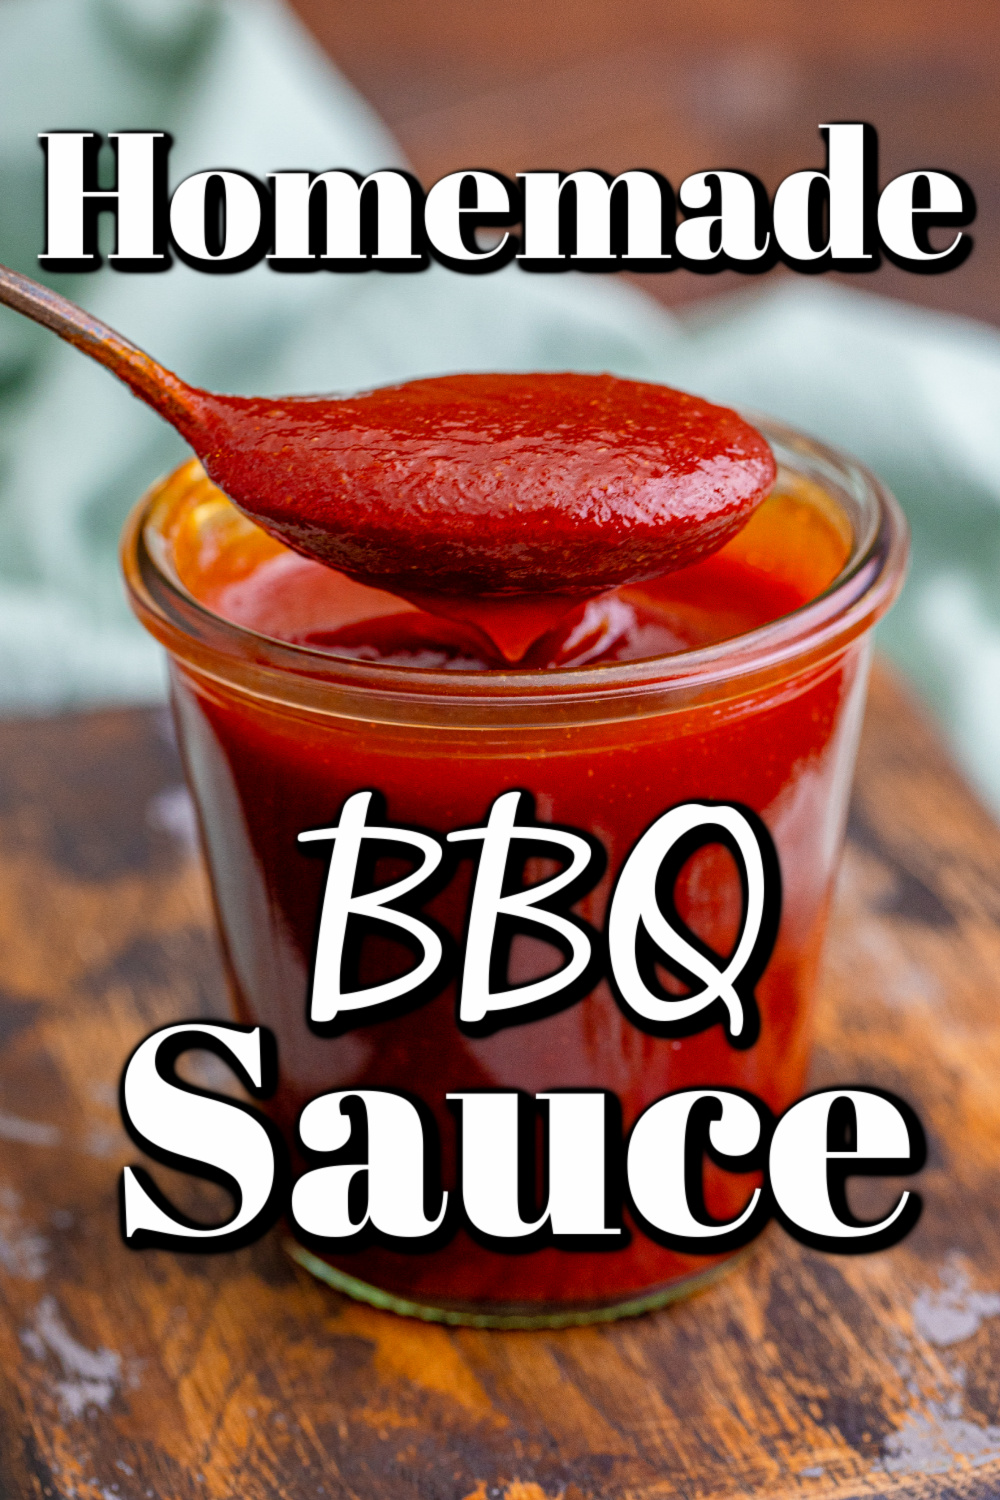 Homemade BBQ Sauce is so easy to prepare and wonderfully tasty! You are going to wonder why you have been buying store bought all these years!